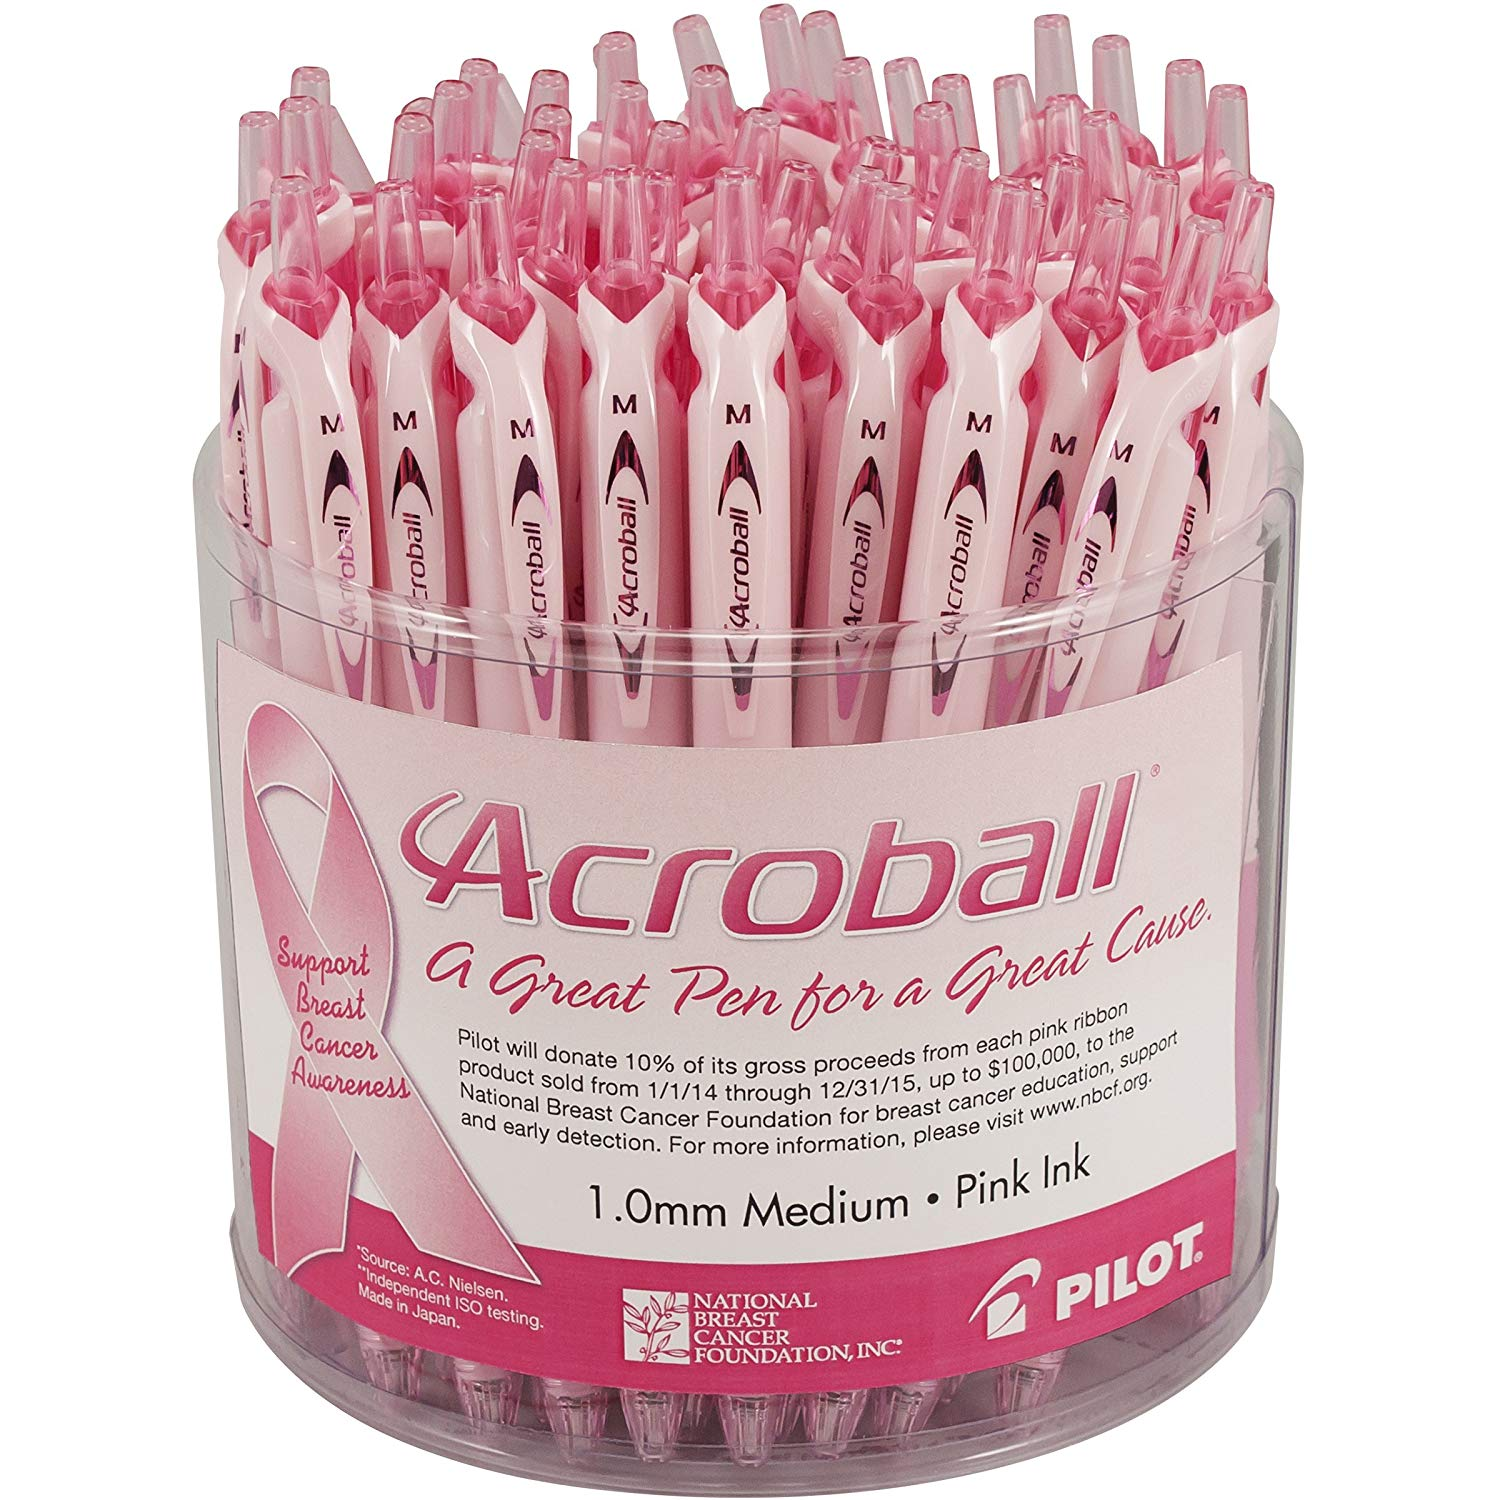 Pilot Acroball Pro Advanced Ink Ballpoint Pens Pink Ink for Breast Cancer Awareness; Medium Point, Retractable, Tub of 48 Pens (5842) Smooth Writing, Smear-Resistant Advanced Ink for Skip-Free Lines